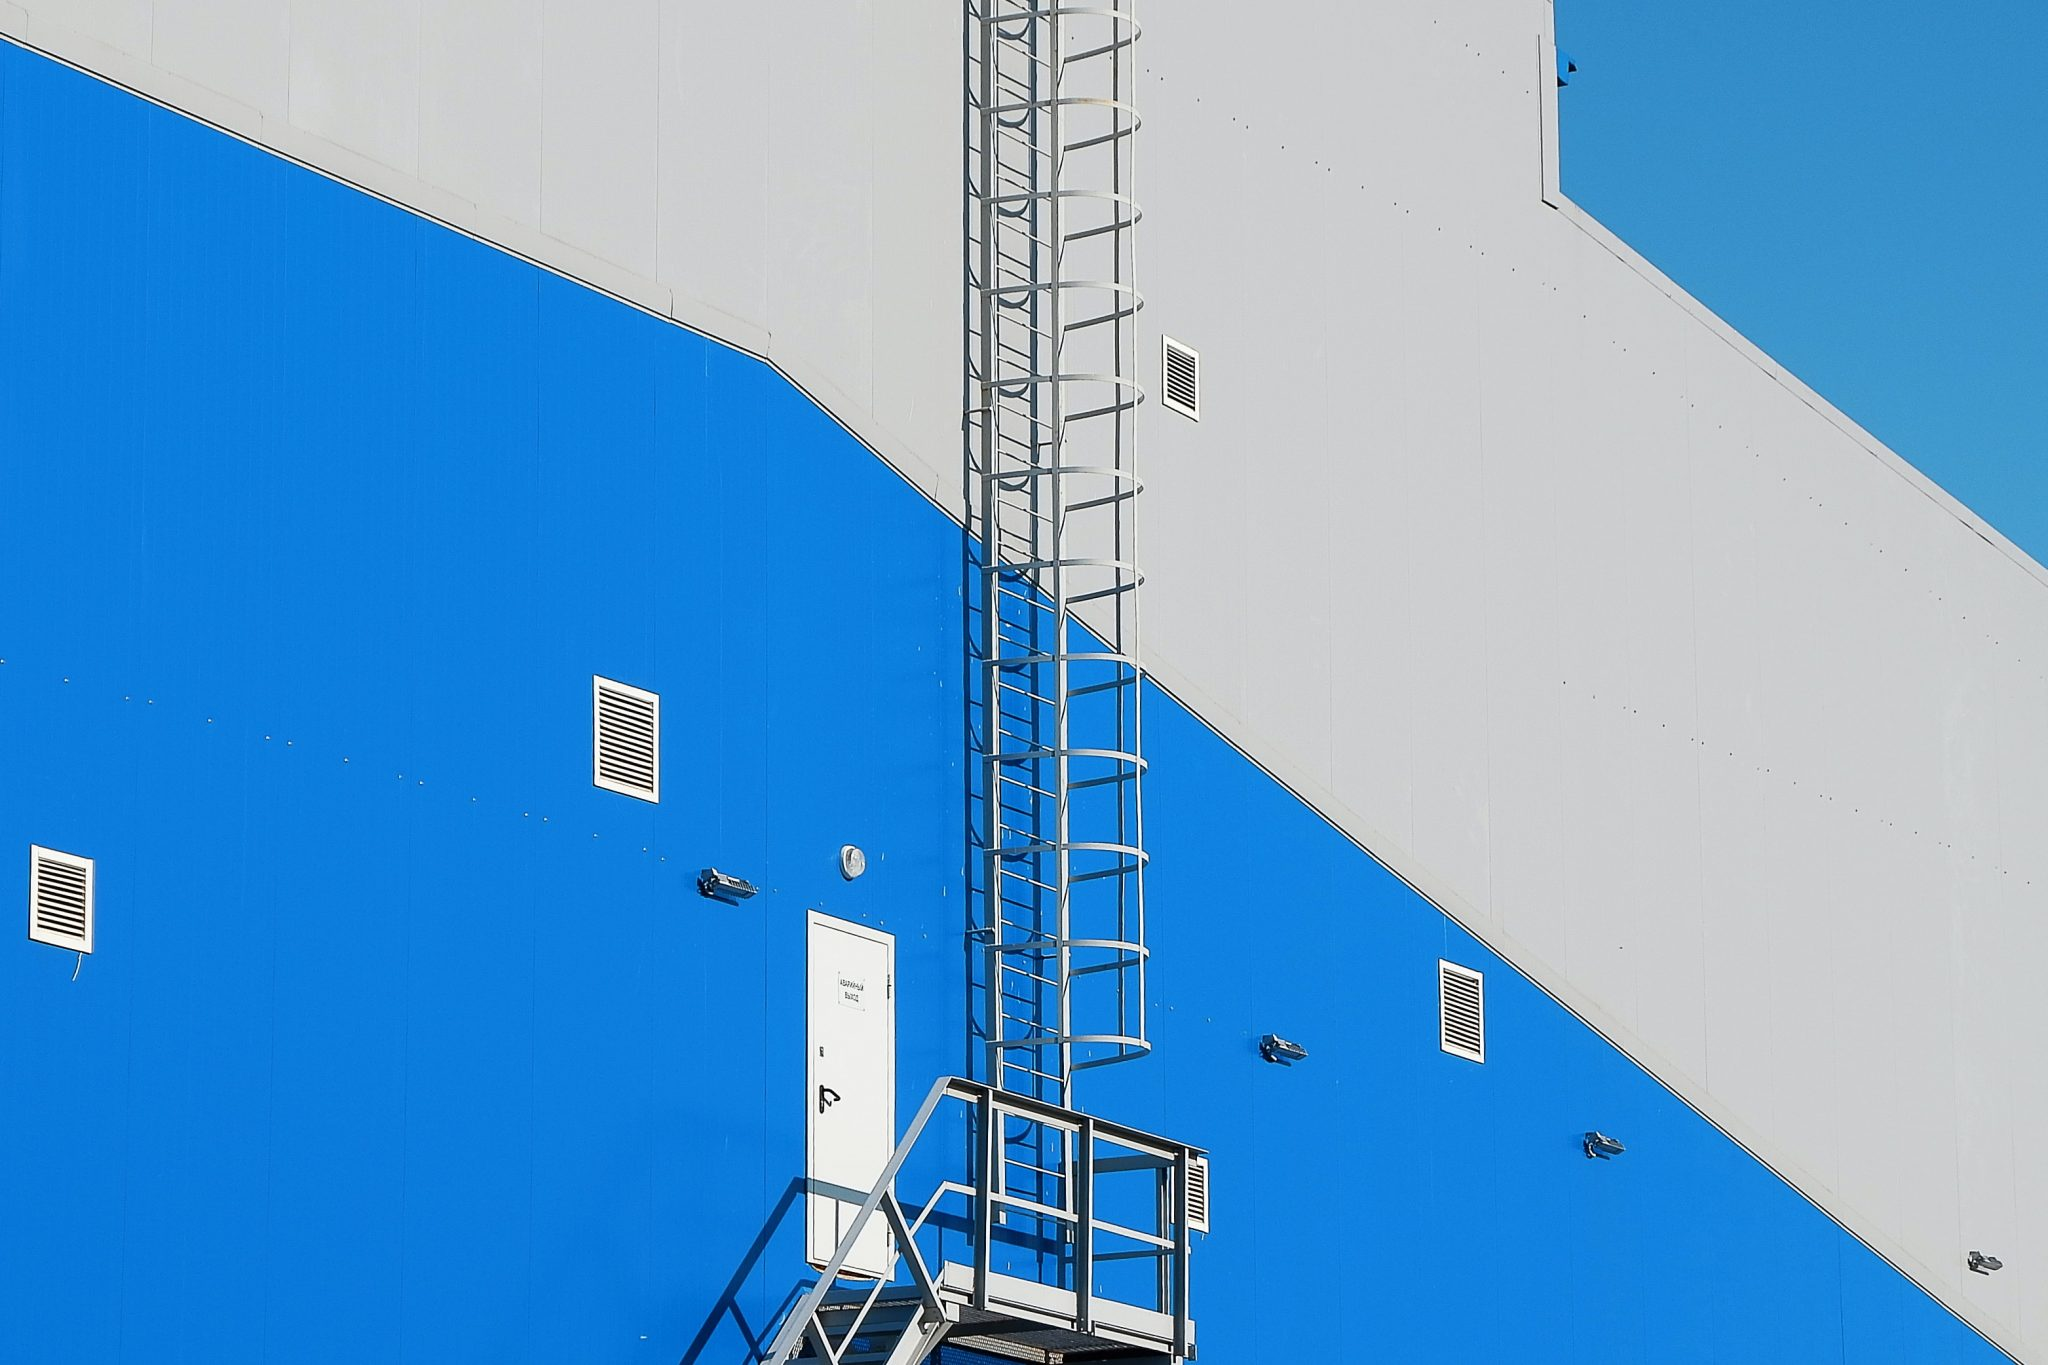 ladder on blue building, alcohol use and your career